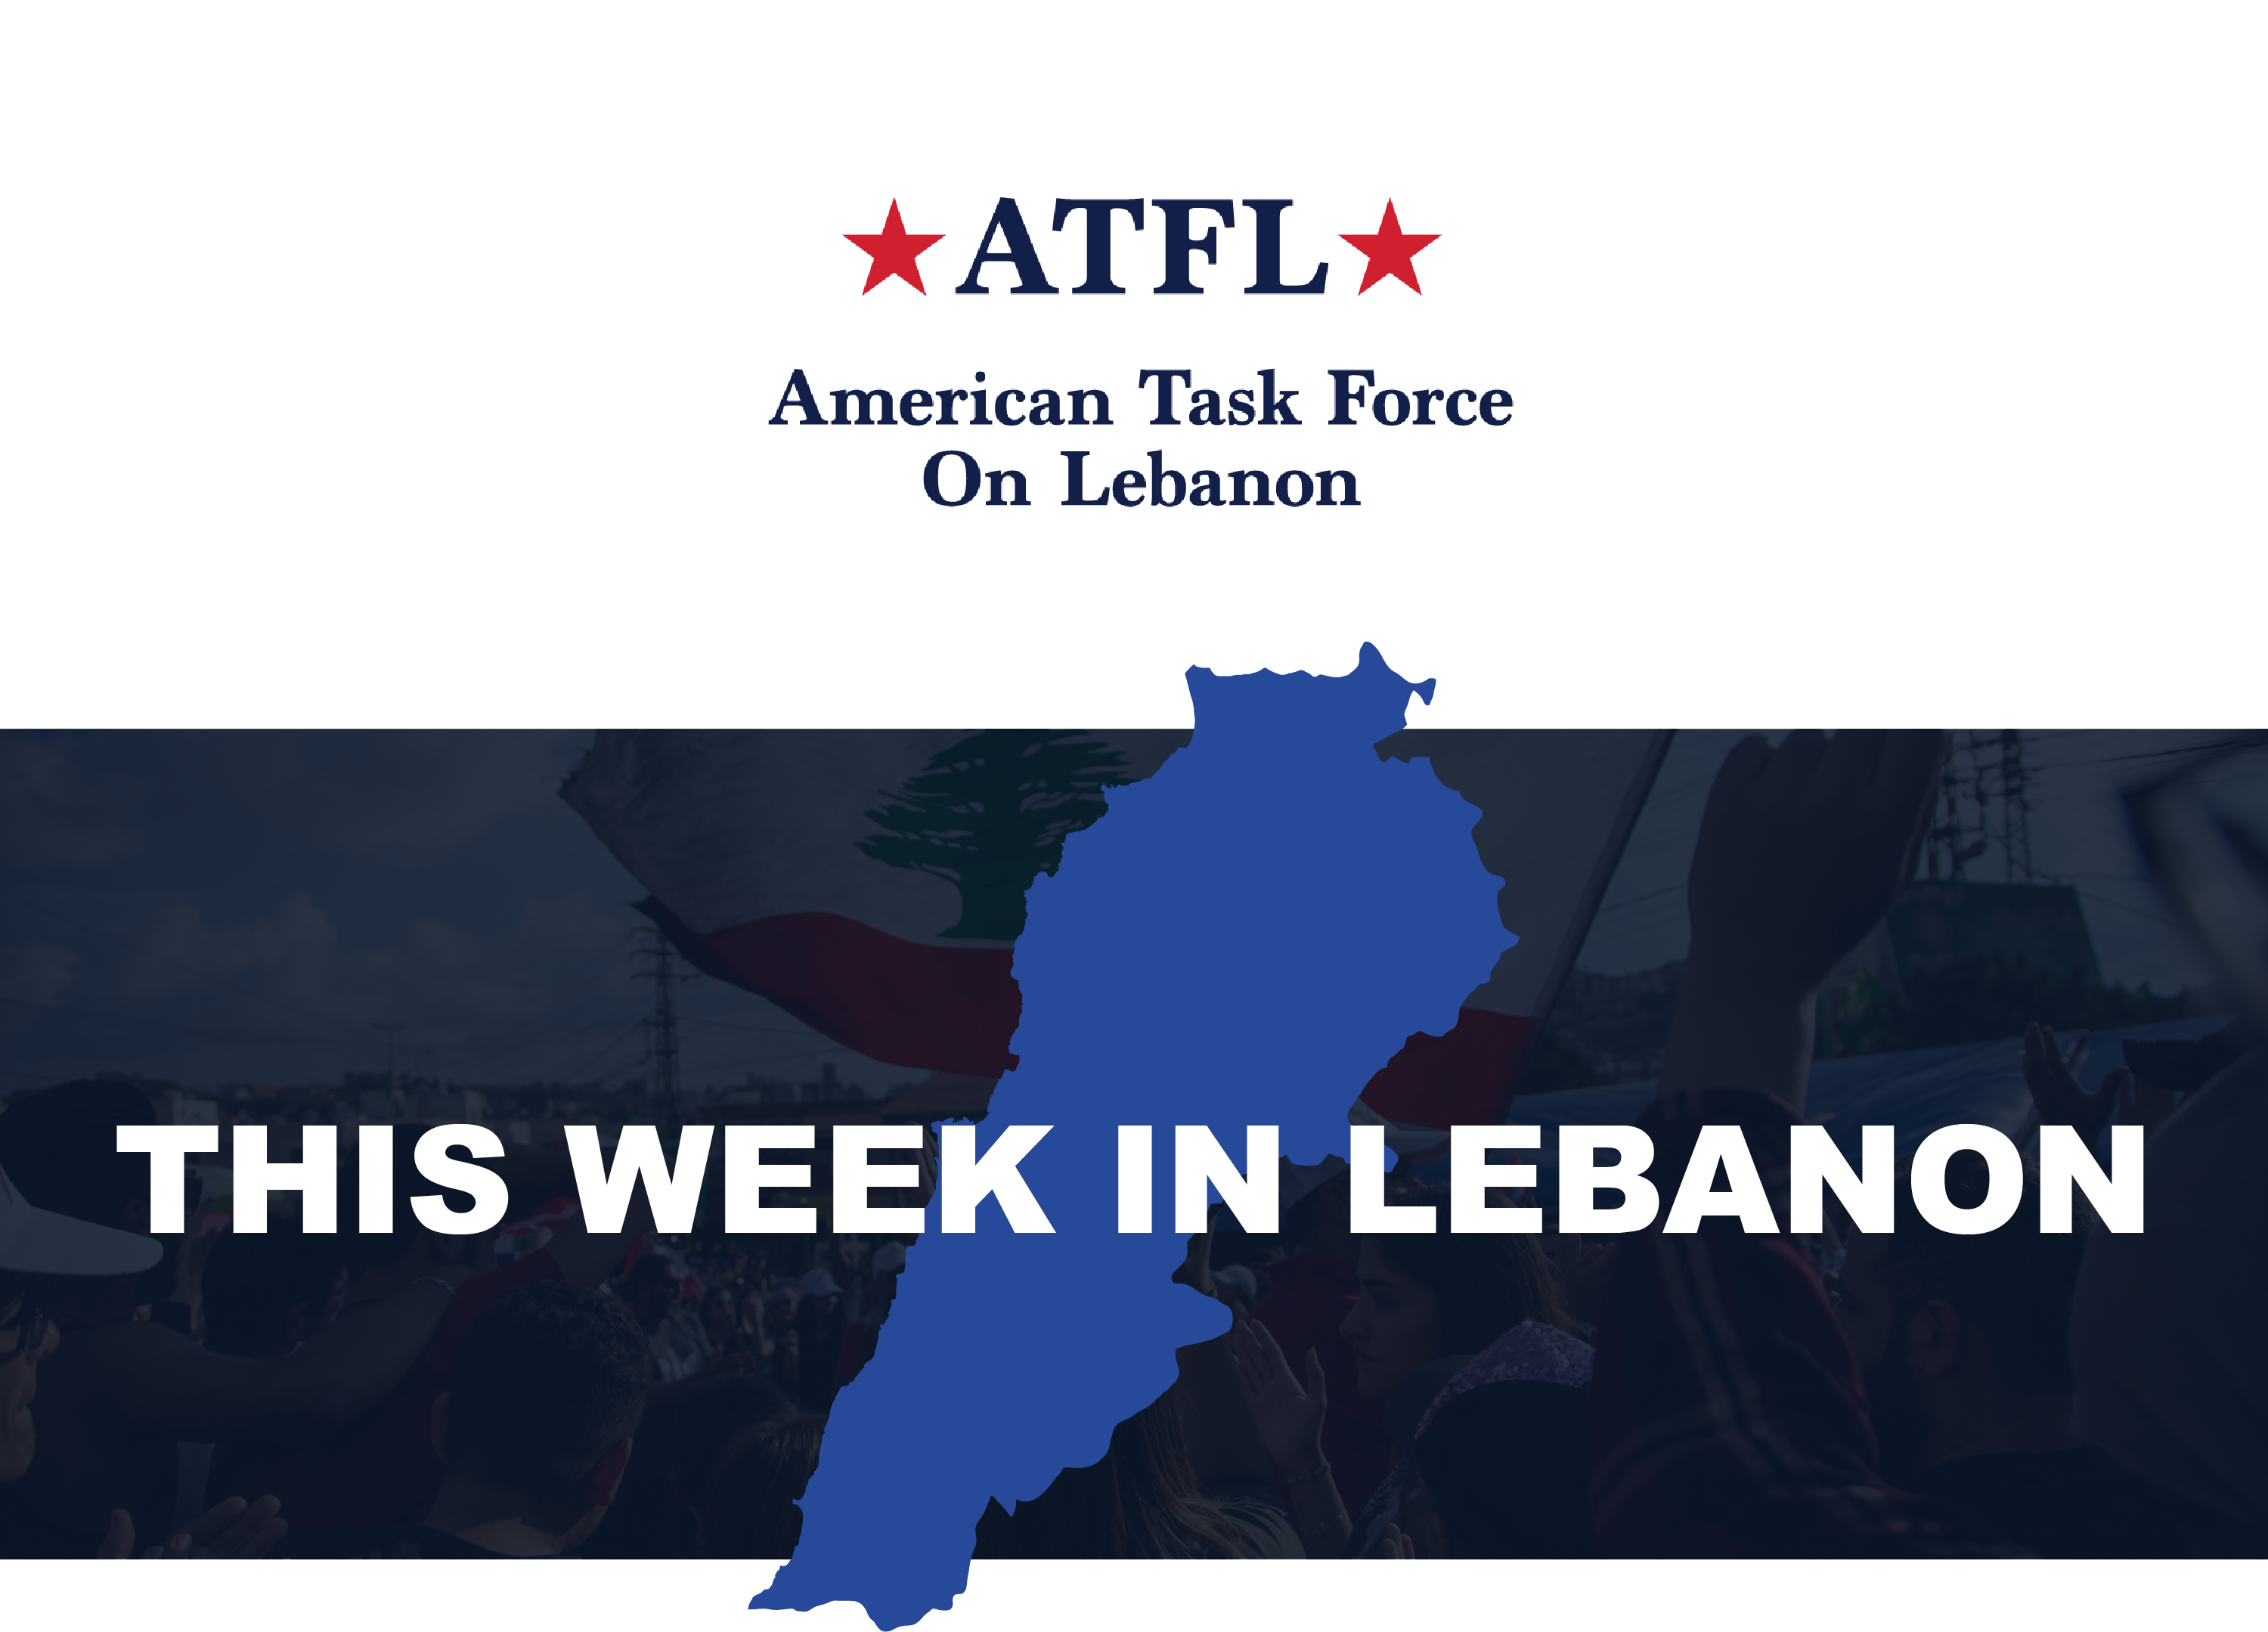 This Week in Lebanon